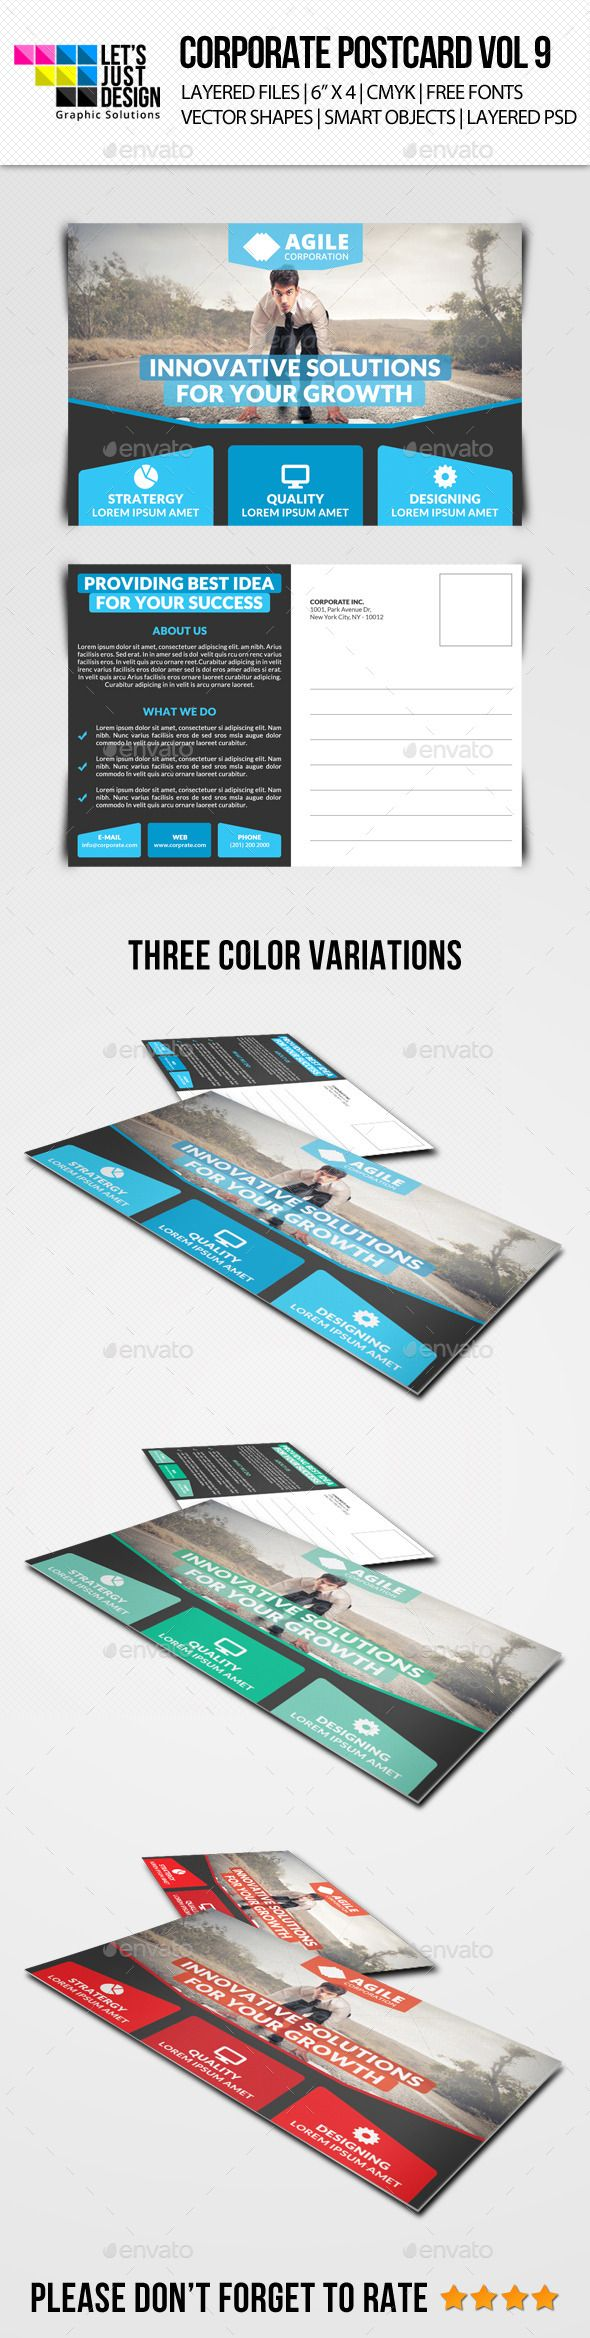 Corporate Postcard Template Vol 9 — Photoshop PSD #corporate #creative • Available here → https://graphicriver.net/item/corporate-postcard-template-vol-9/10746511?ref=pxcr